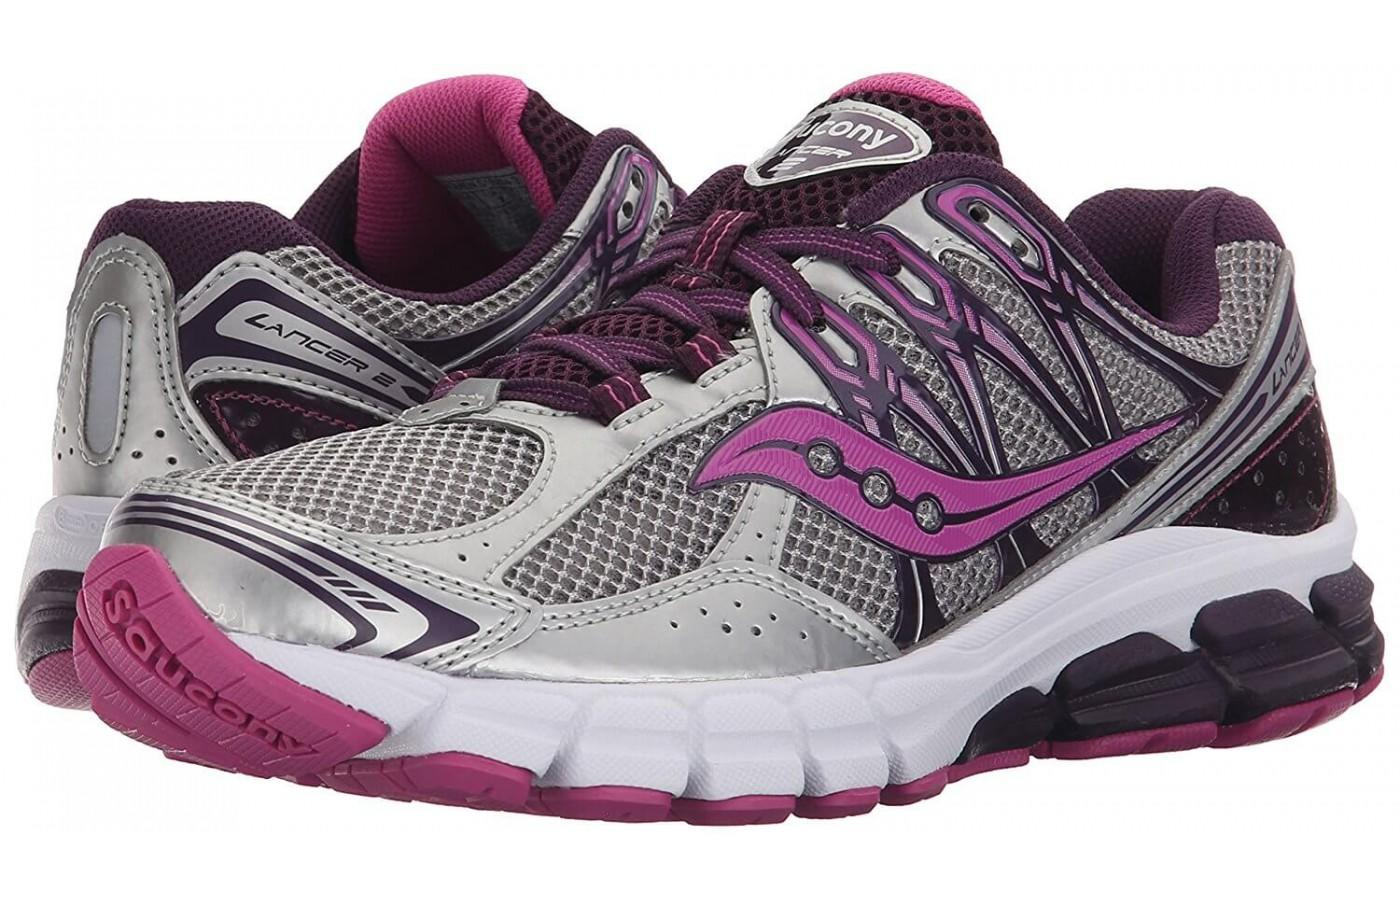 Saucony Lancer 2 women's color offering with grey and fuchsia accents